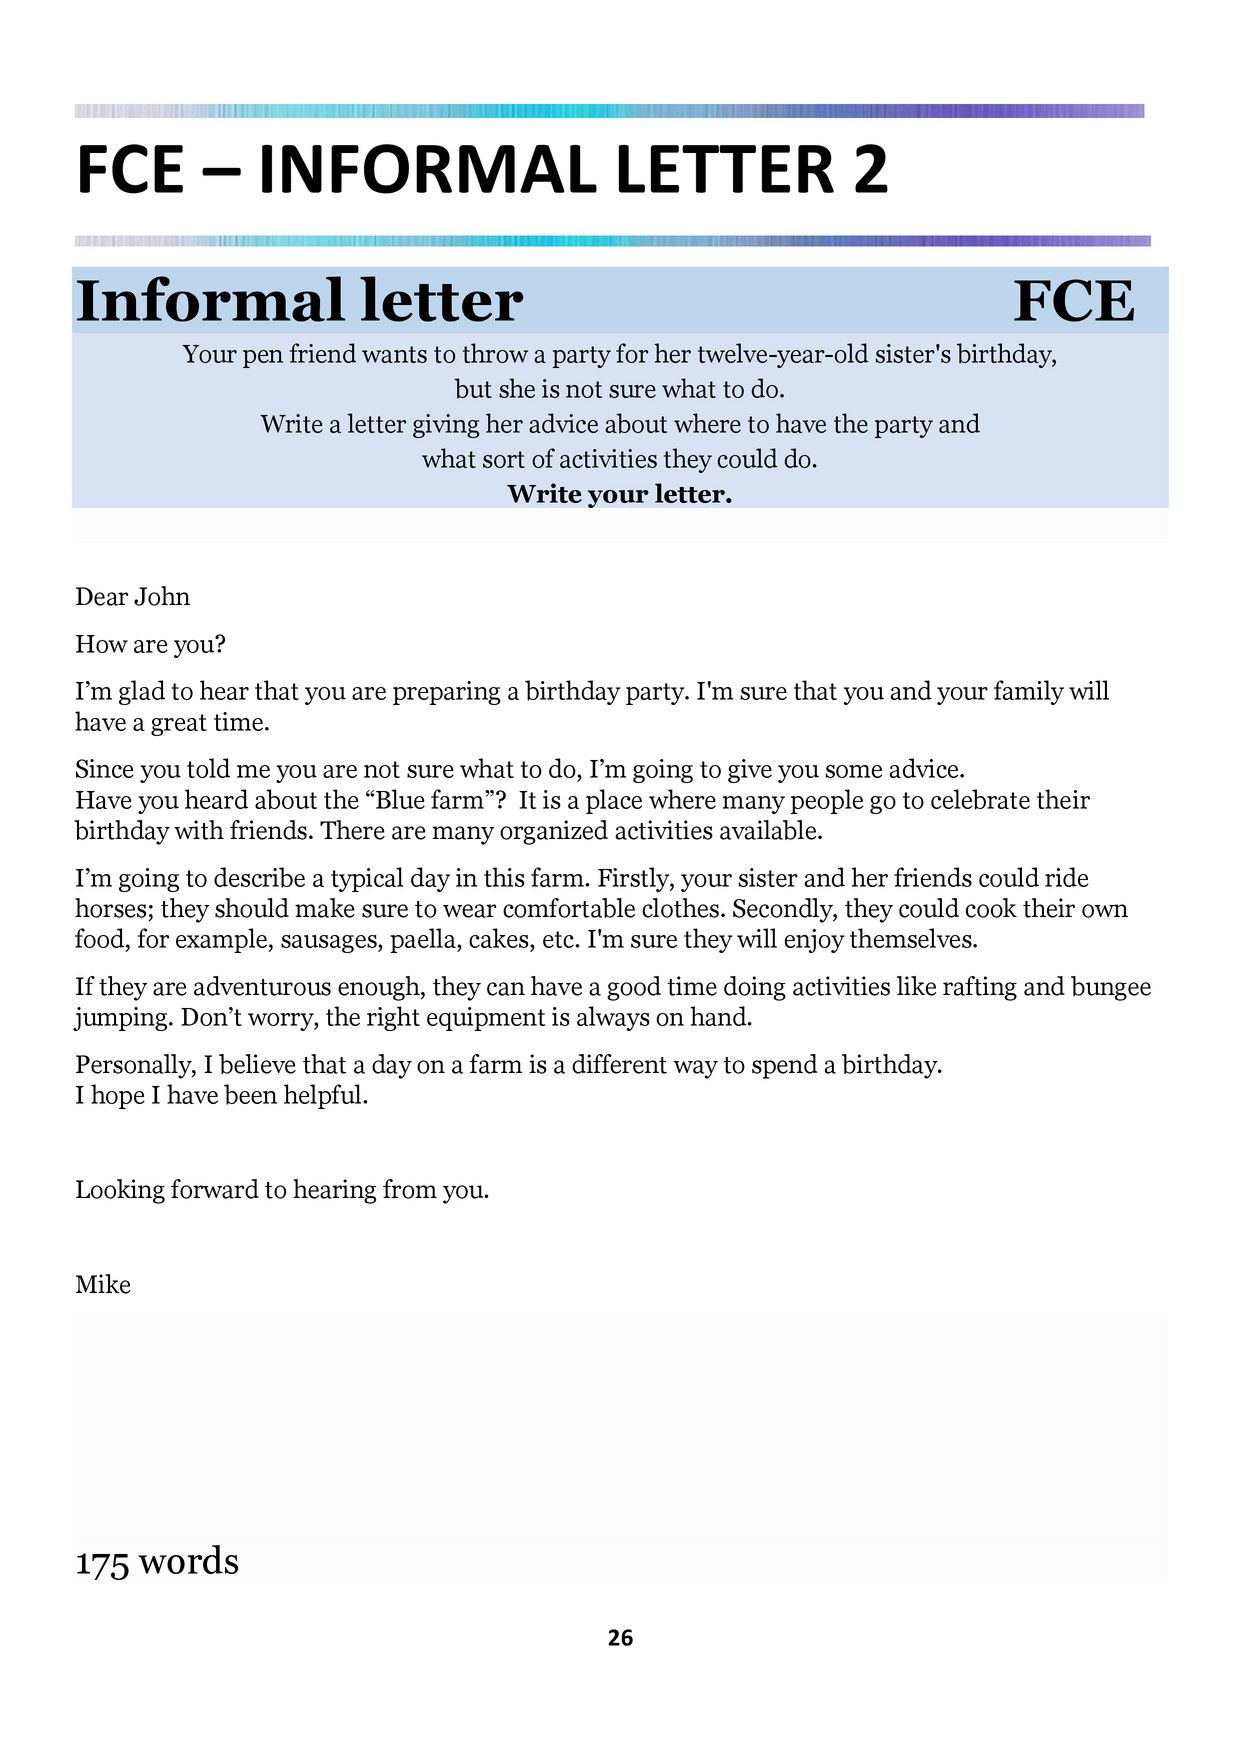 Fce cae real writing examples learn grammar pinterest english how to write informal letters in english with examples letterpile spiritdancerdesigns Images